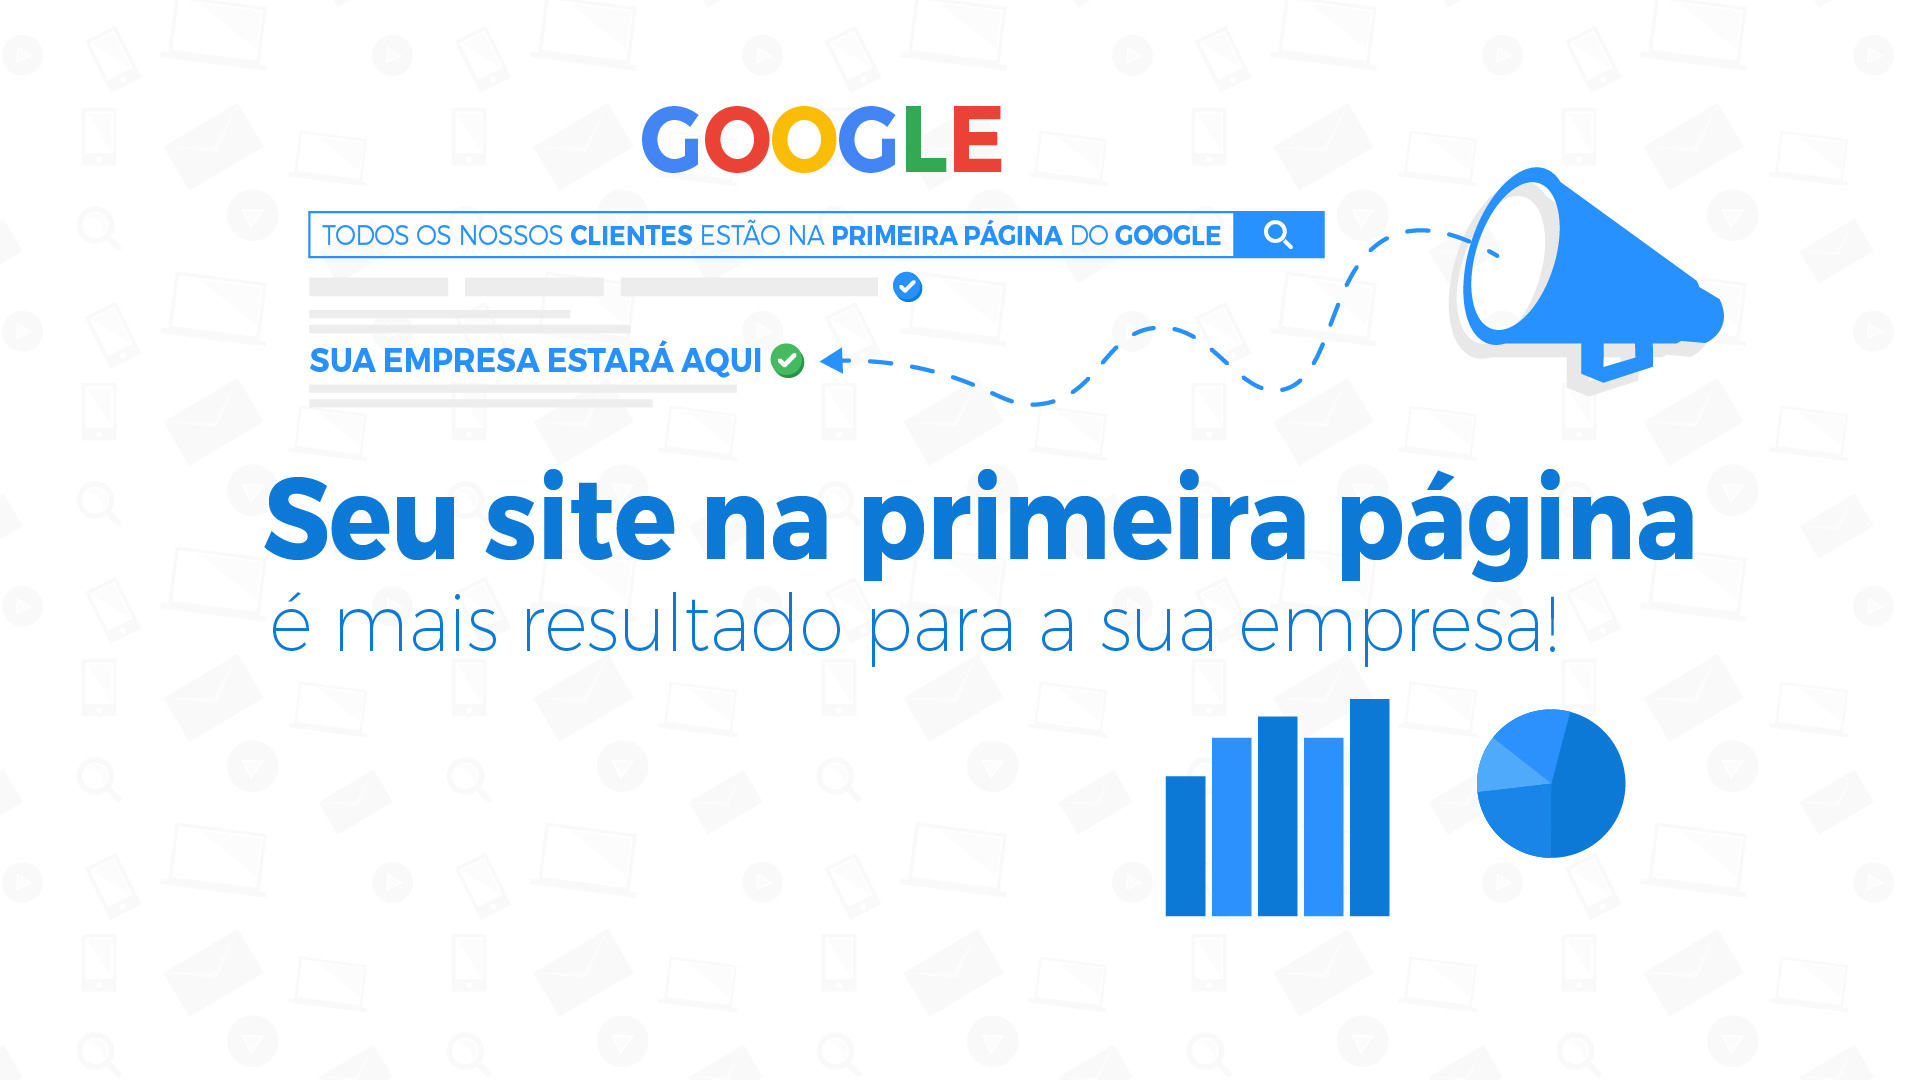 otimizacao-de-sites-sp-consultoria-seo-divulgar-site-espalhando-marketing-digital-1